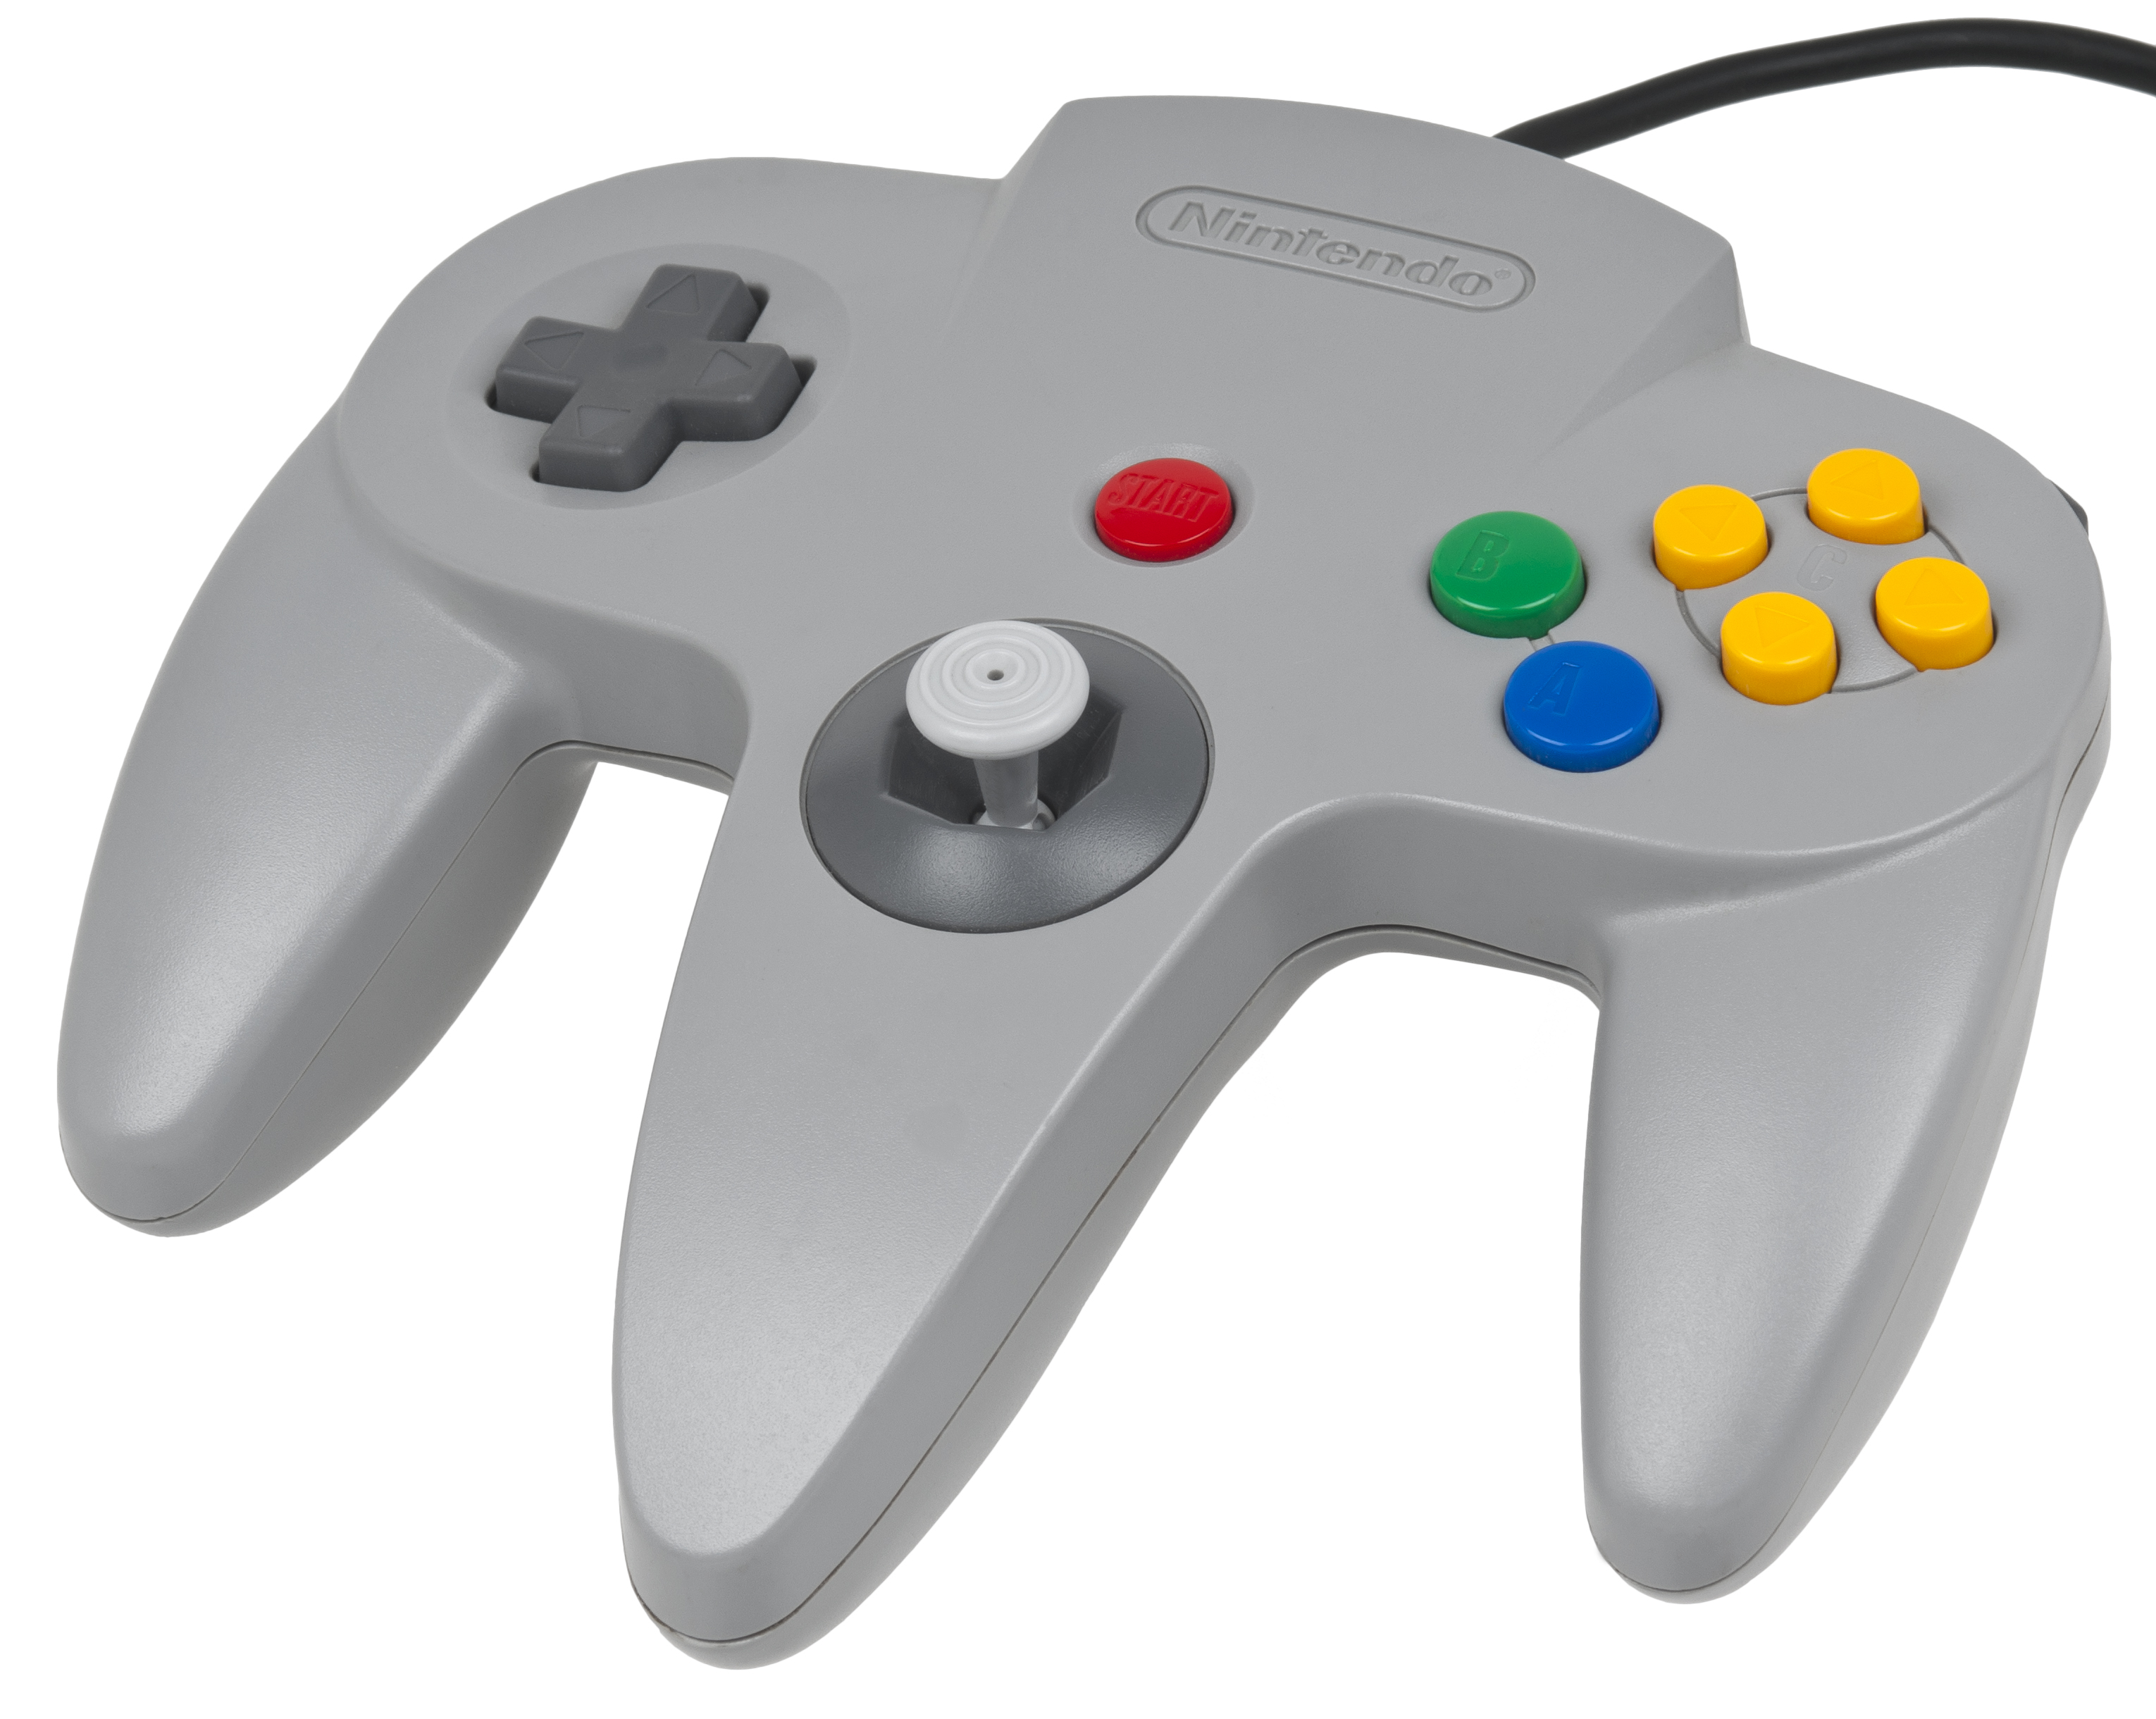 Was the N64 controller your favourite?